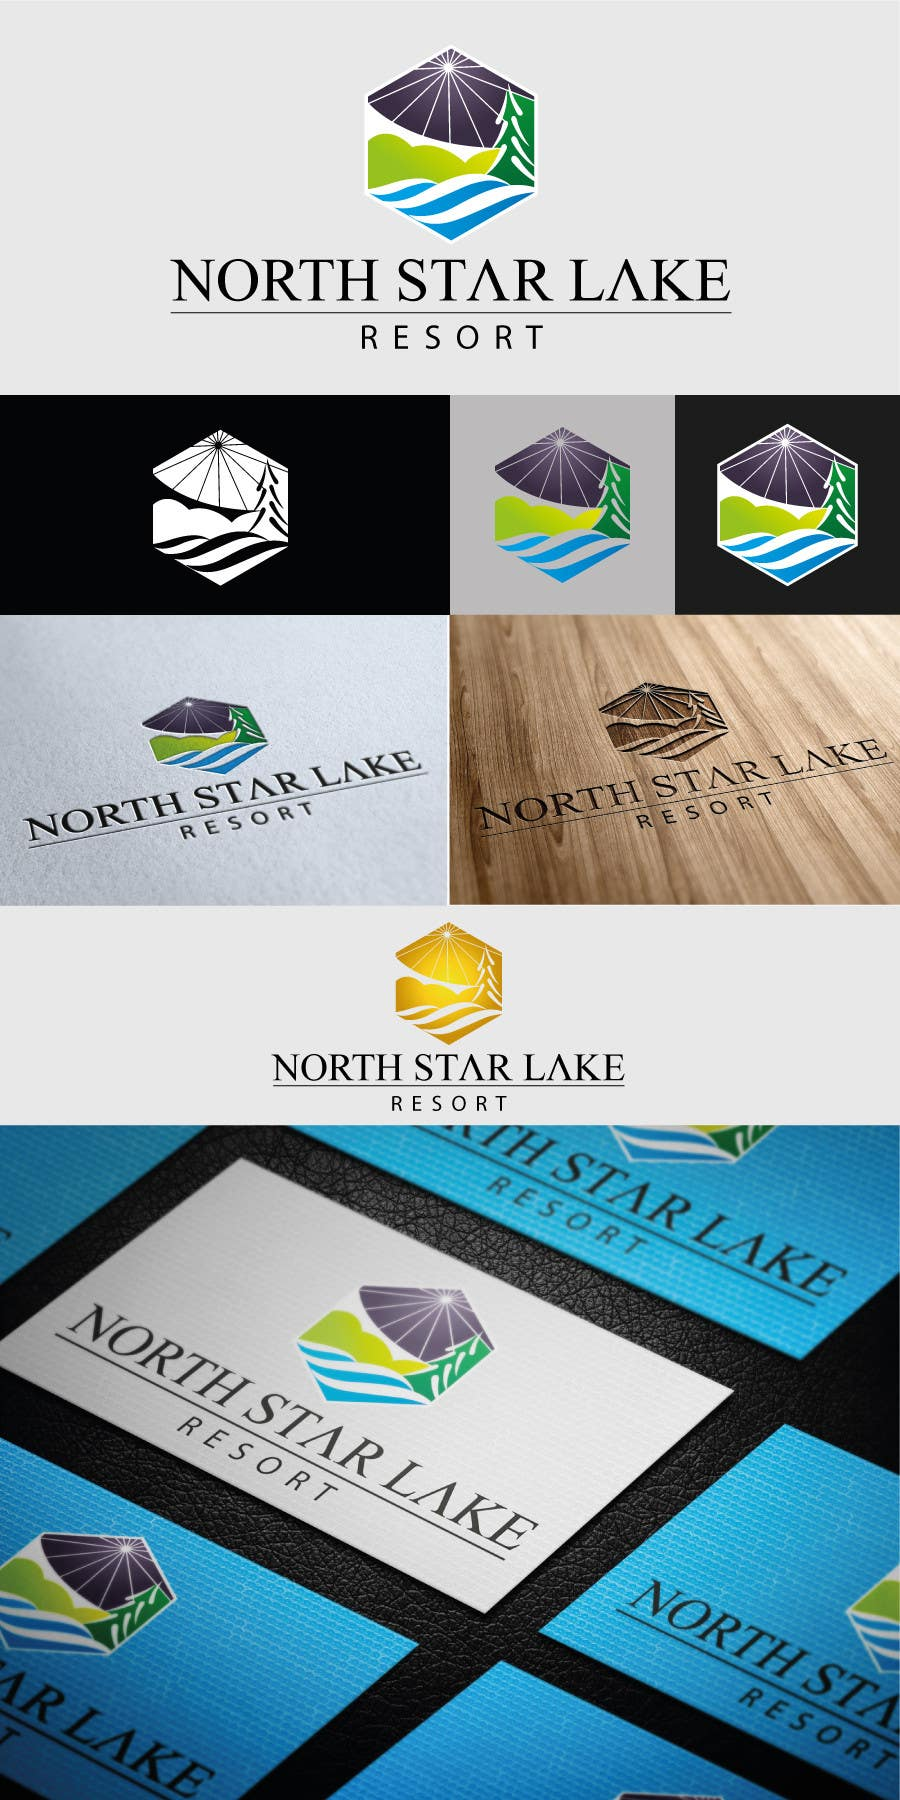 Konkurrenceindlæg #75 for Logo Design for A northwoods resort in Minnesota USA called North Star Lake Resort